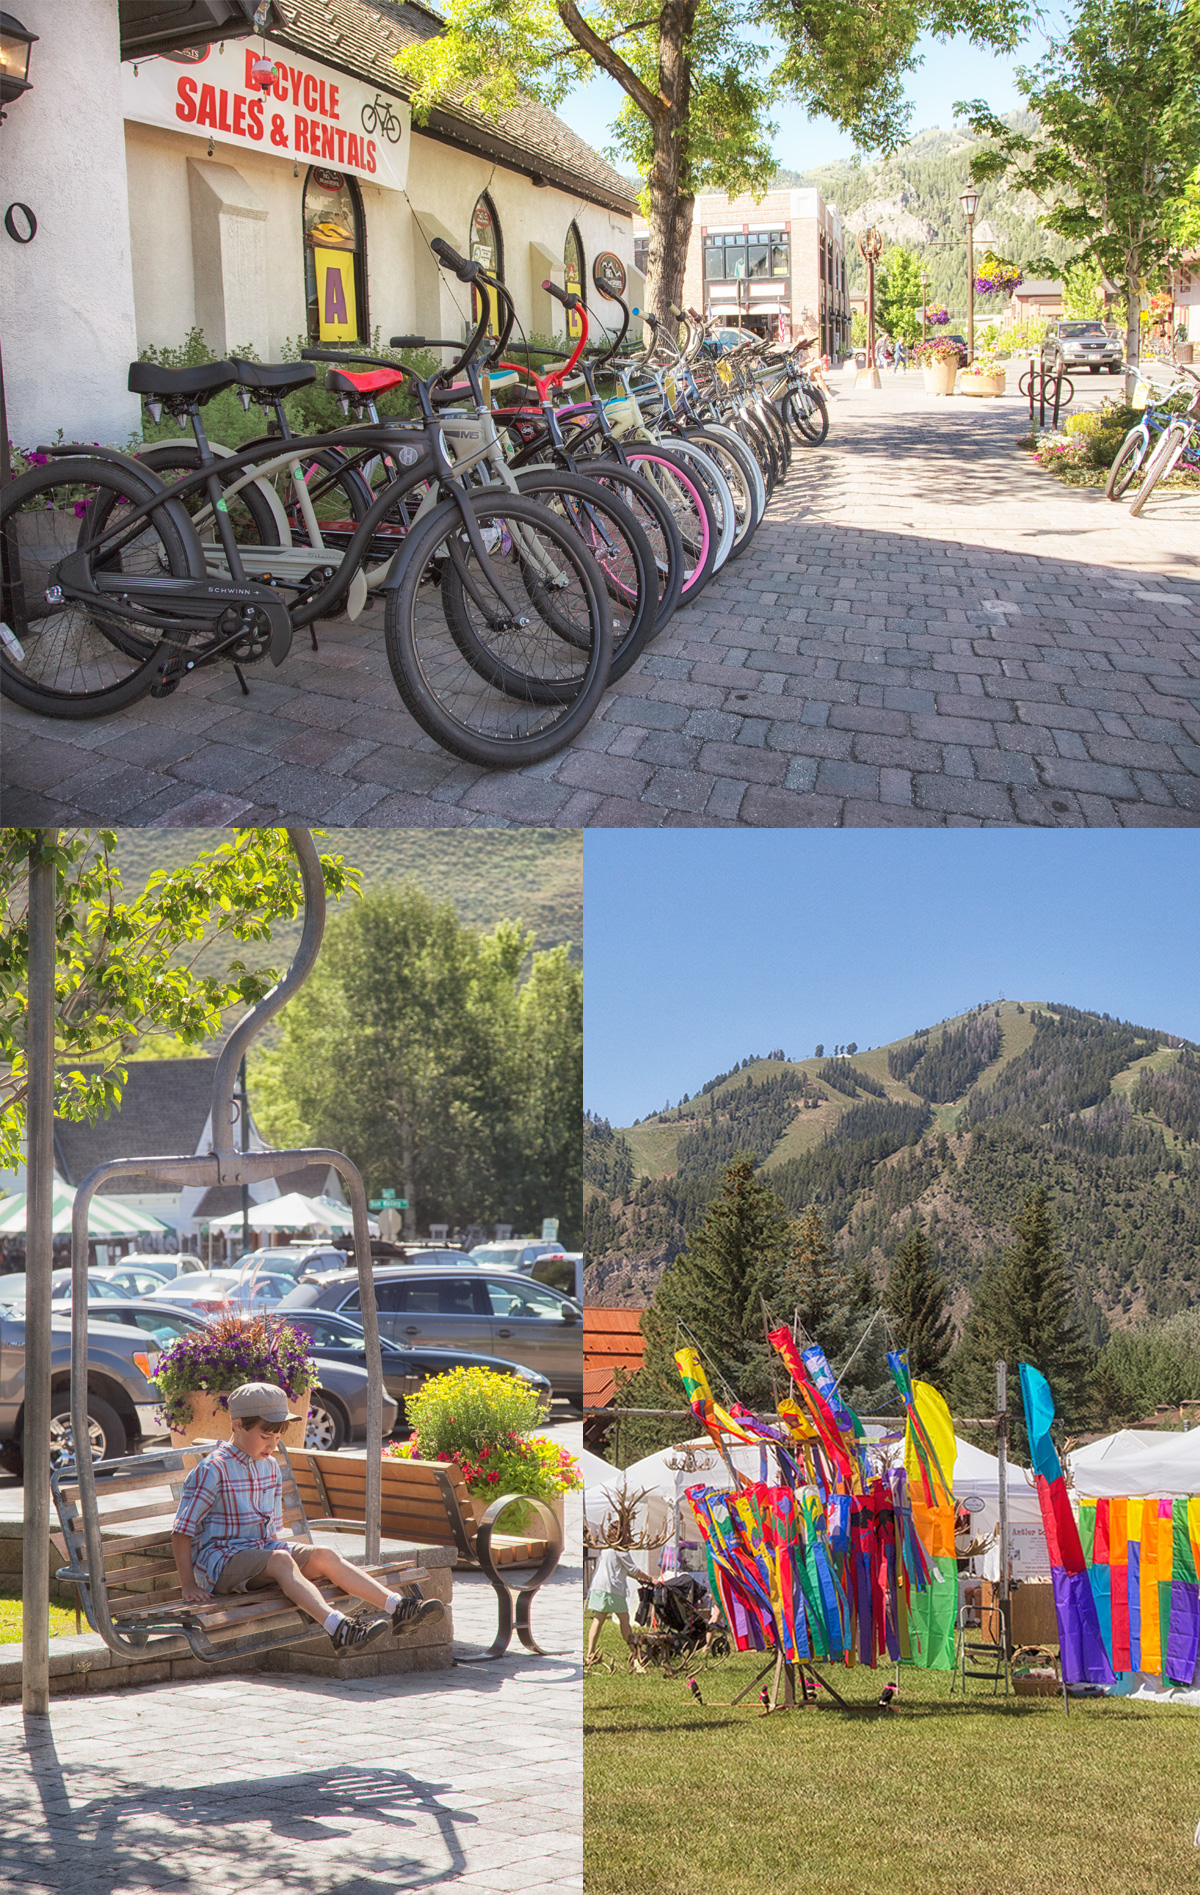 on our way through downtown Ketchum to the annual Ketchum Art Festival